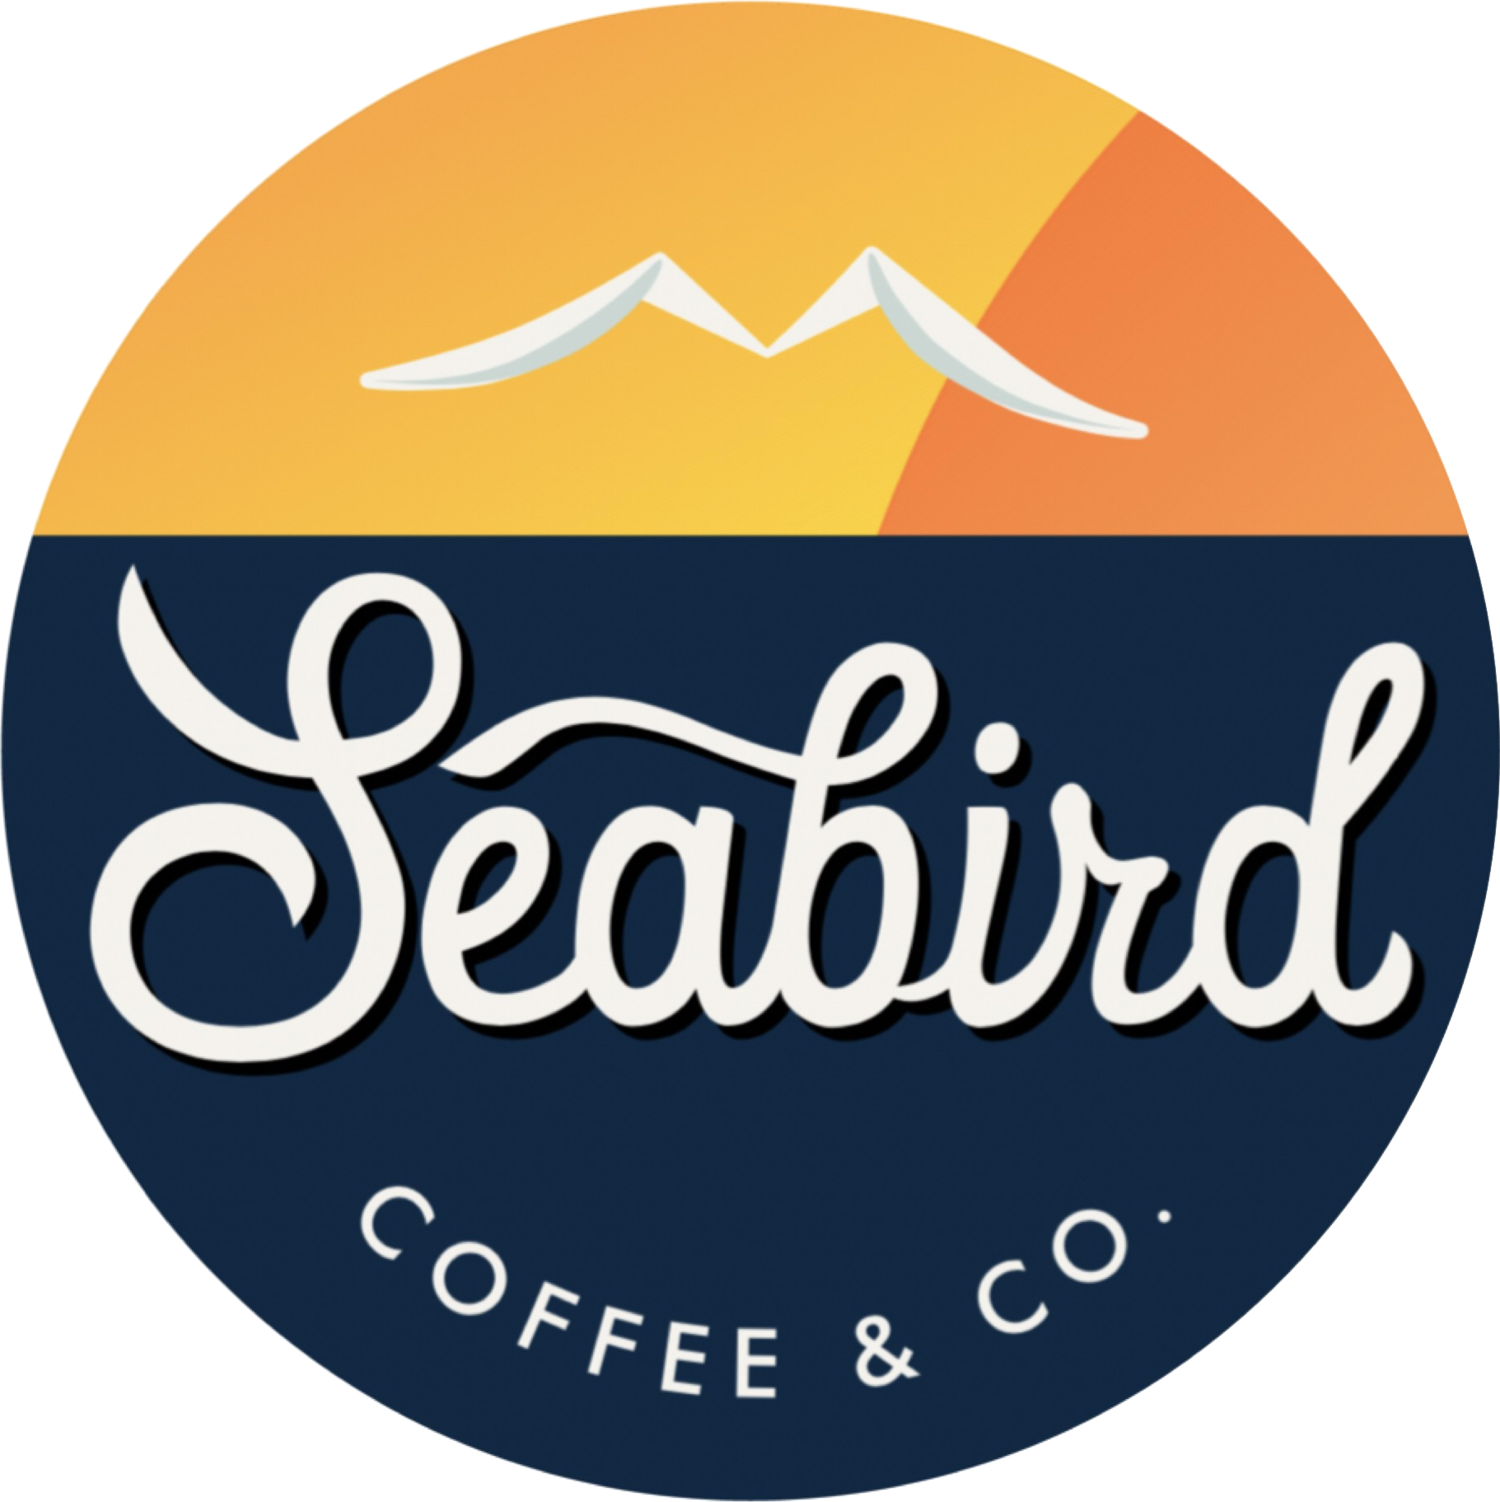 Seabird Coffee Co.